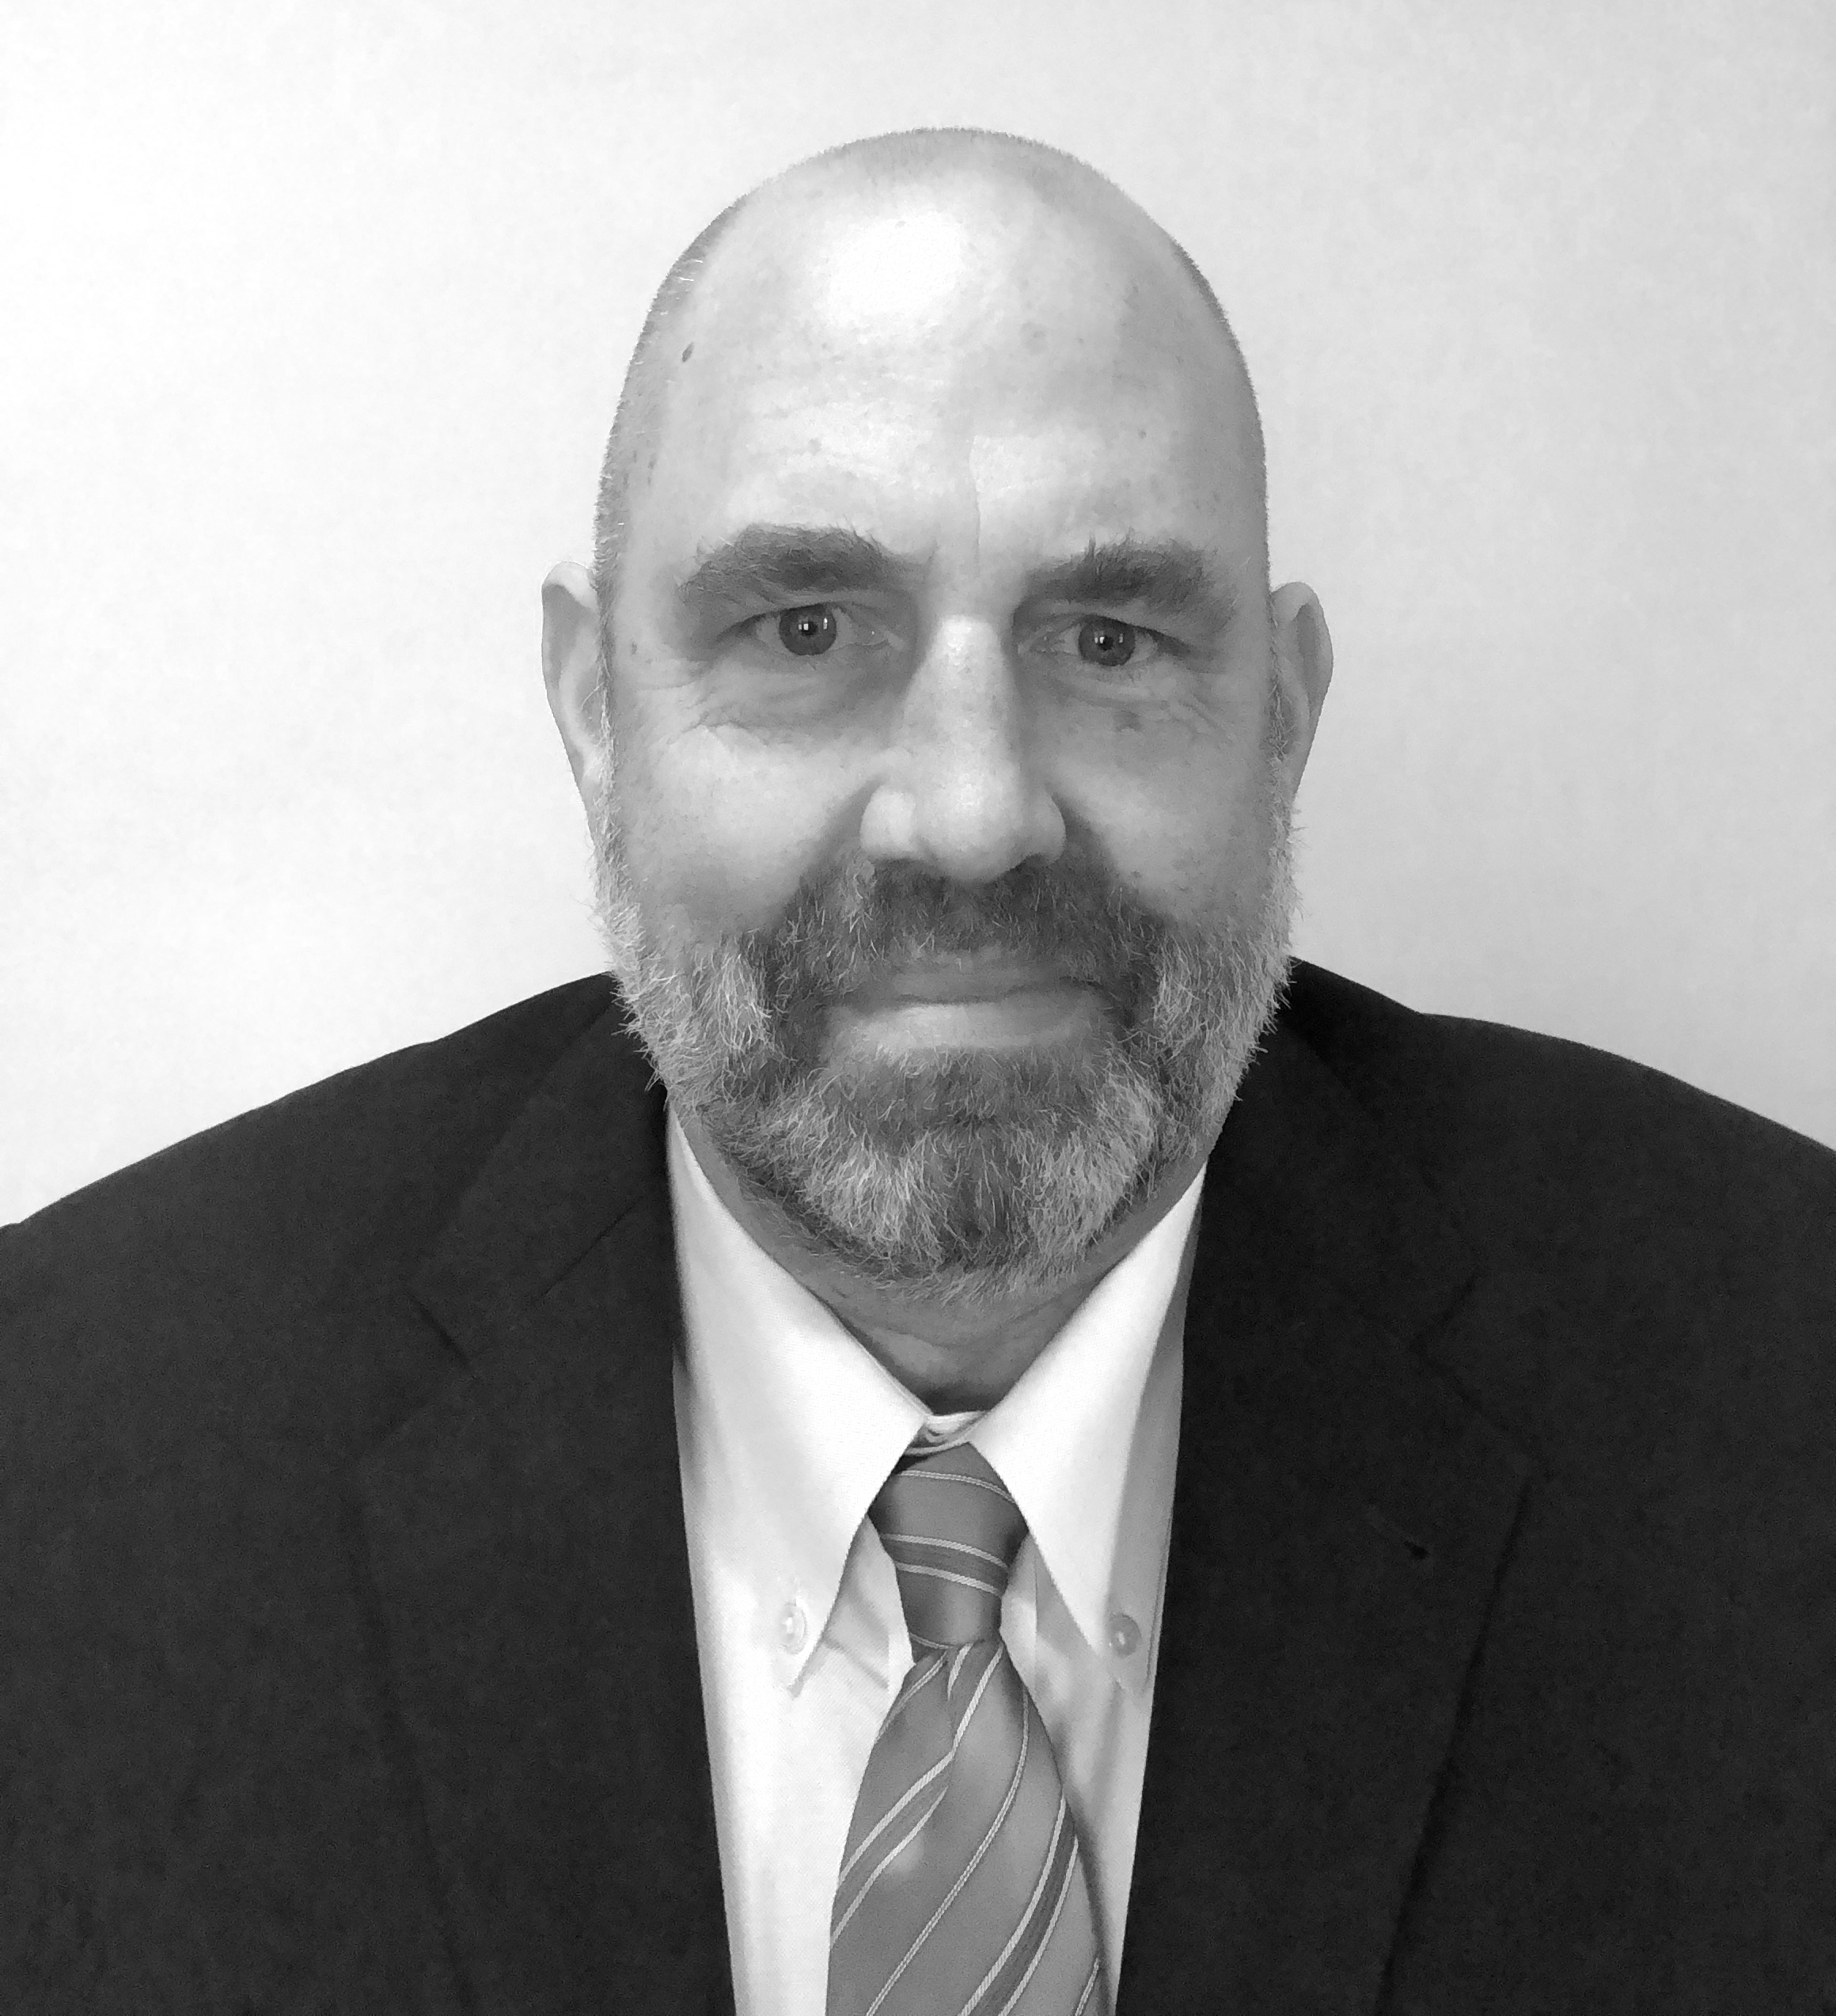 Photo of Karl Johnson, Division President of CareCloud